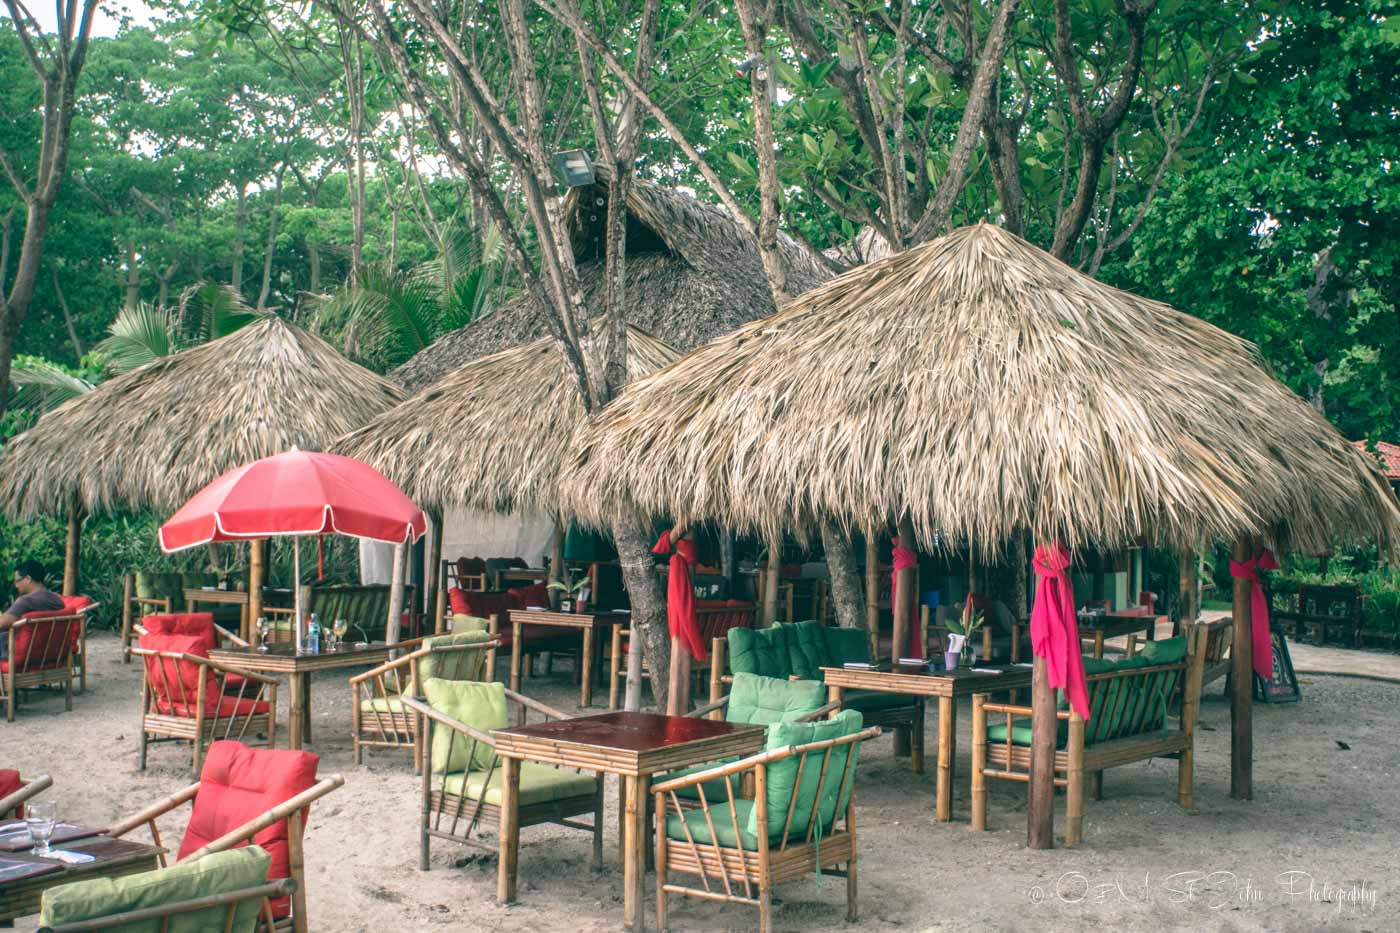 things to do in santa teresa costa rica: dining out